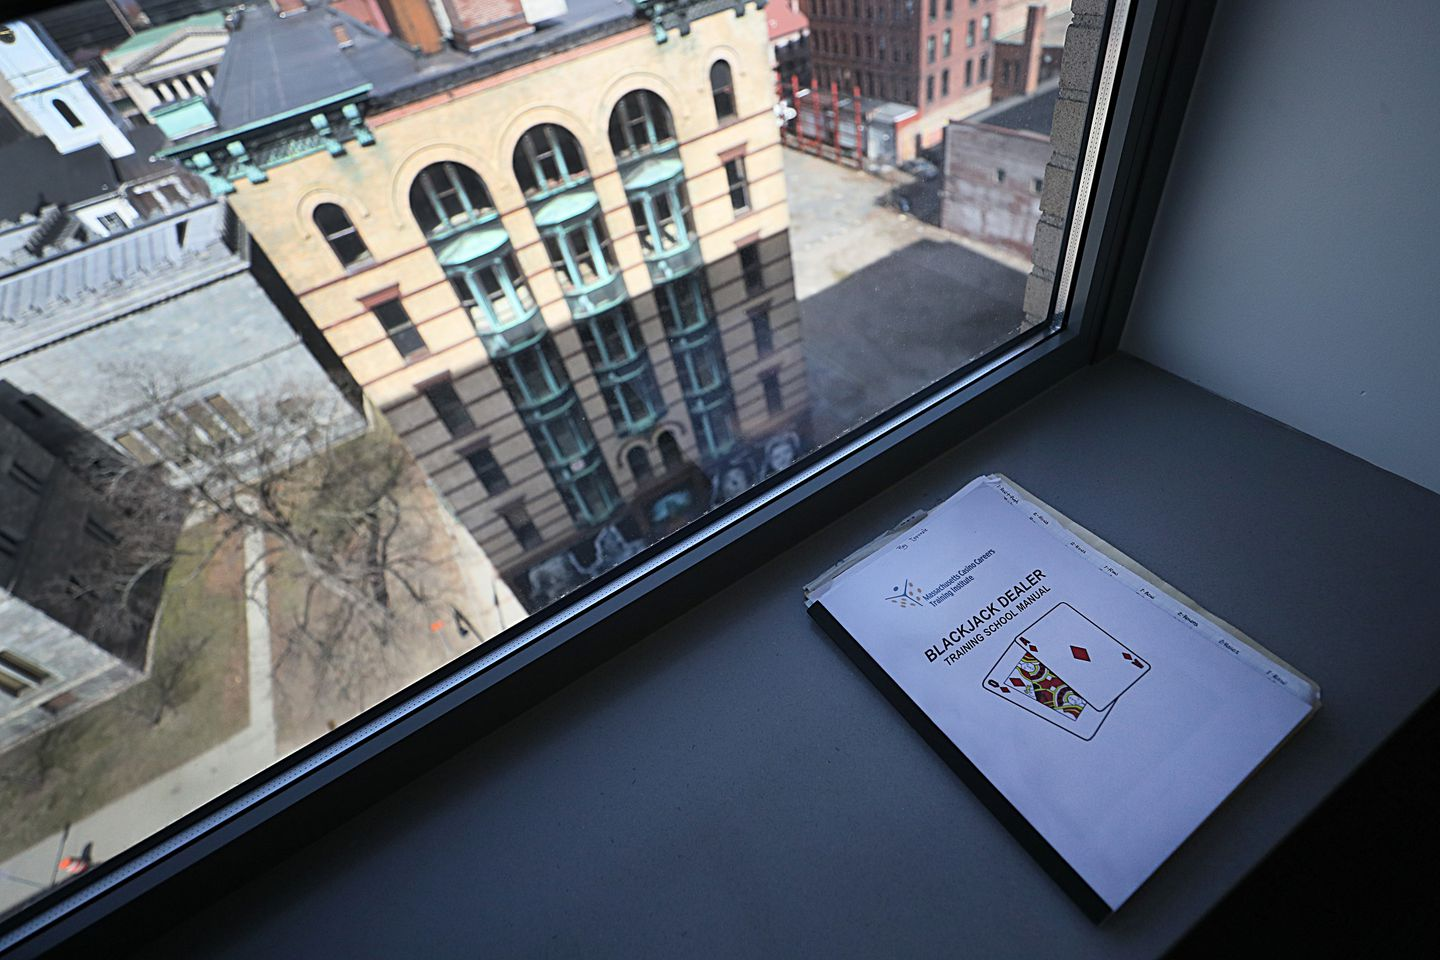 A blackjack manual in a window overlooking downtown Springfield.